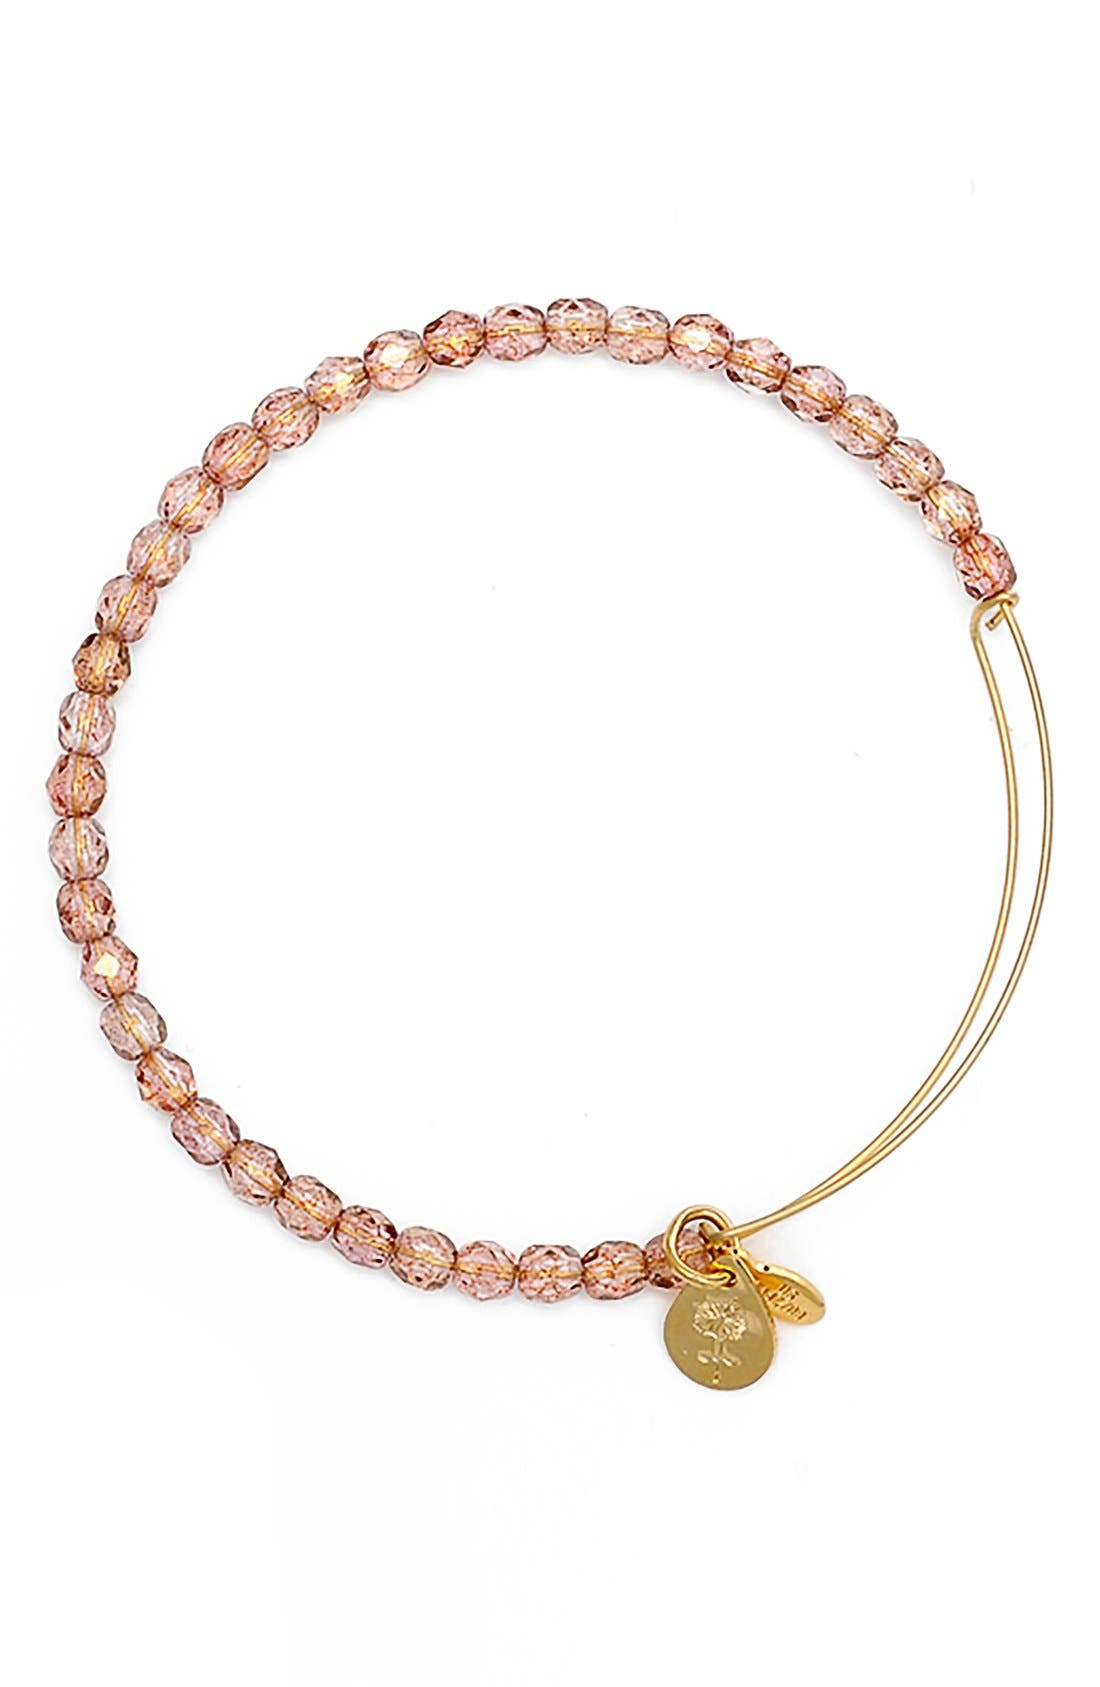 Main Image - Alex and Ani 'Rock Candy' Expandable Wire Bangle Bracelet